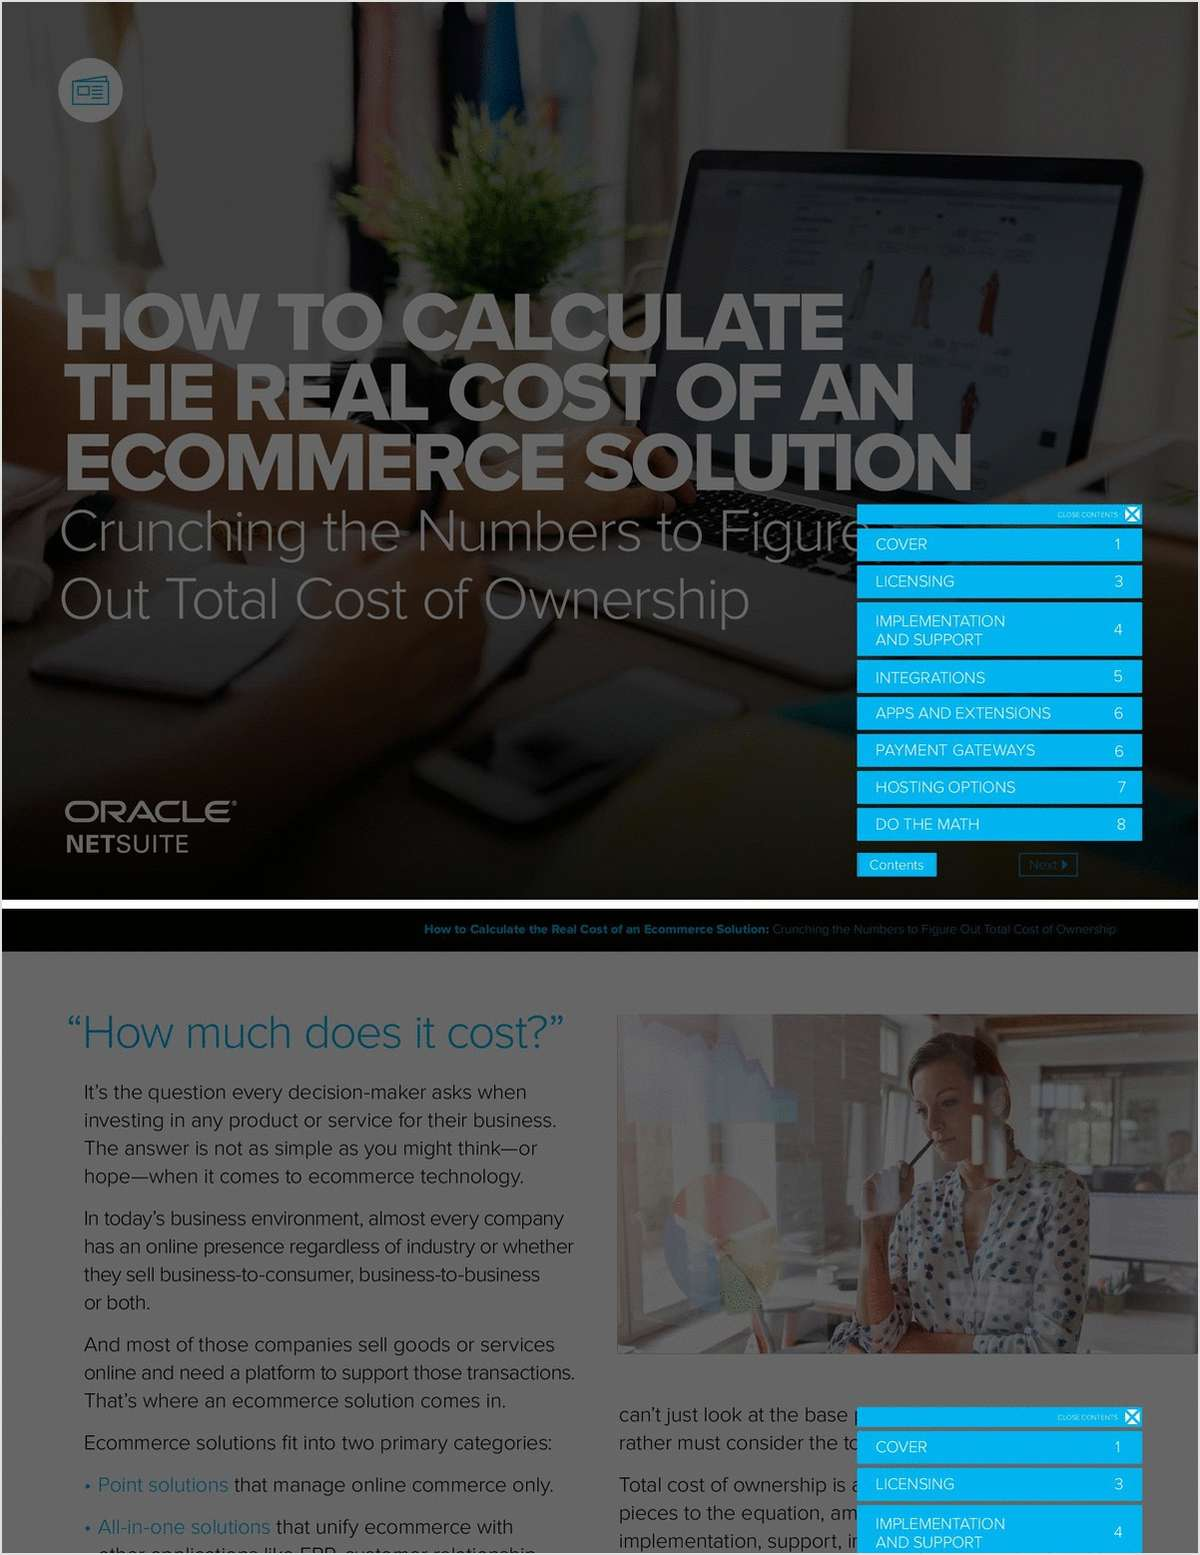 How To Calculate the Real Cost of an eCommerce Solution